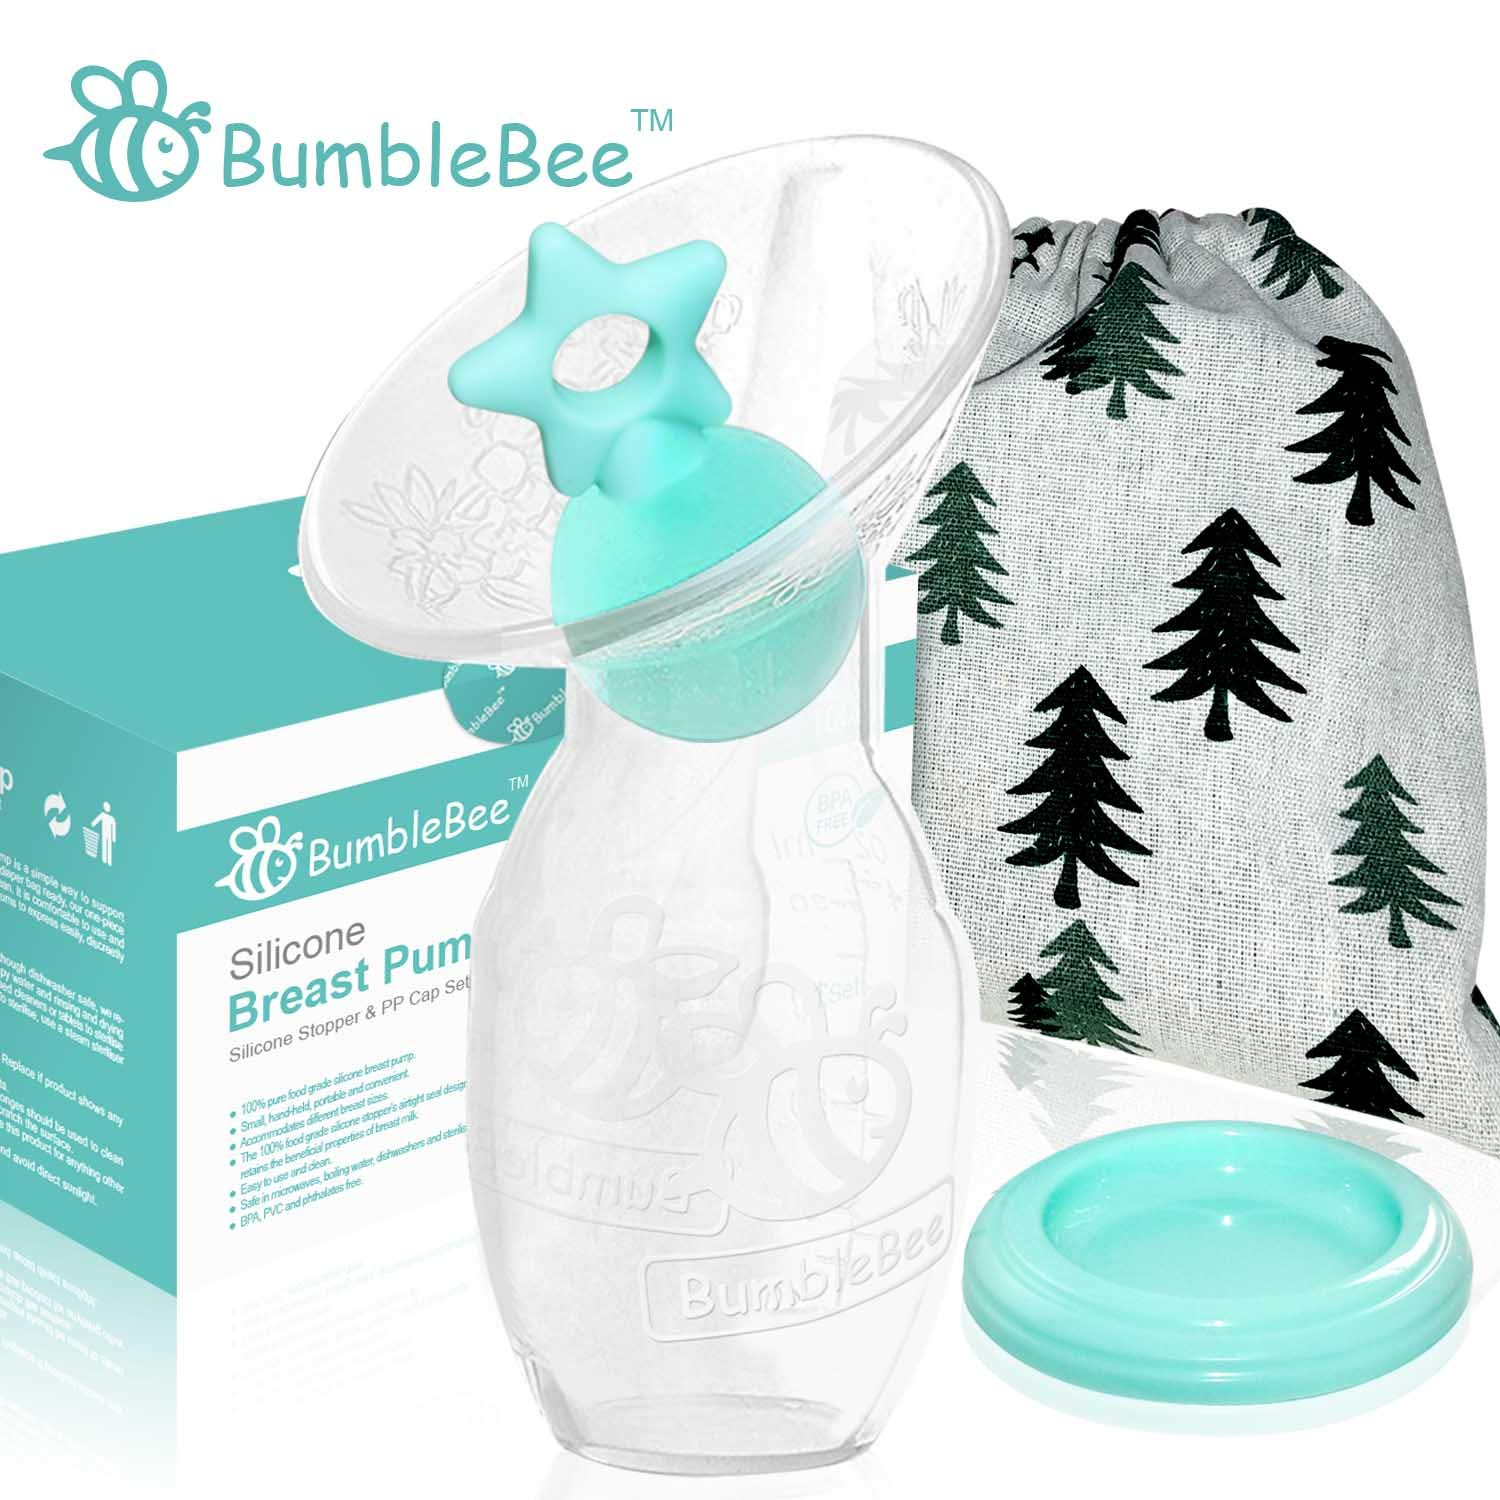 Bumblebee Manual Silicone Breast Pump Breastfeeding Collection Milk Pump Pink Heart Shape Silicone Stopper with lid in Gift Box bpa Free /&Food Grade Silicone Breast Pump